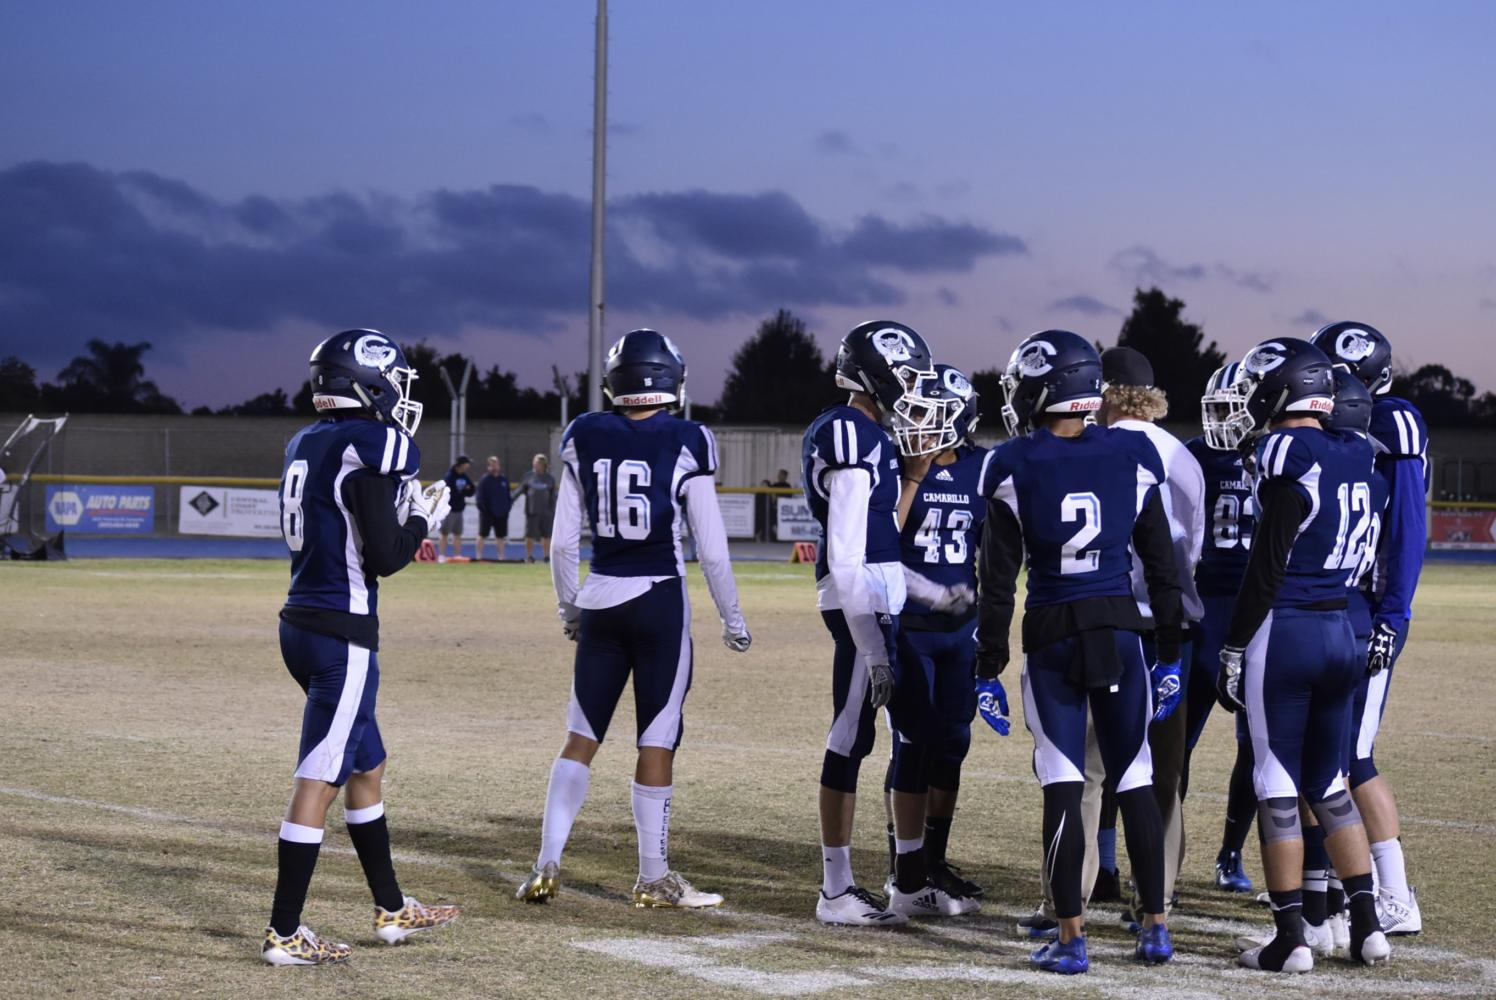 The football team huddles around their coach to prepare for the next play.